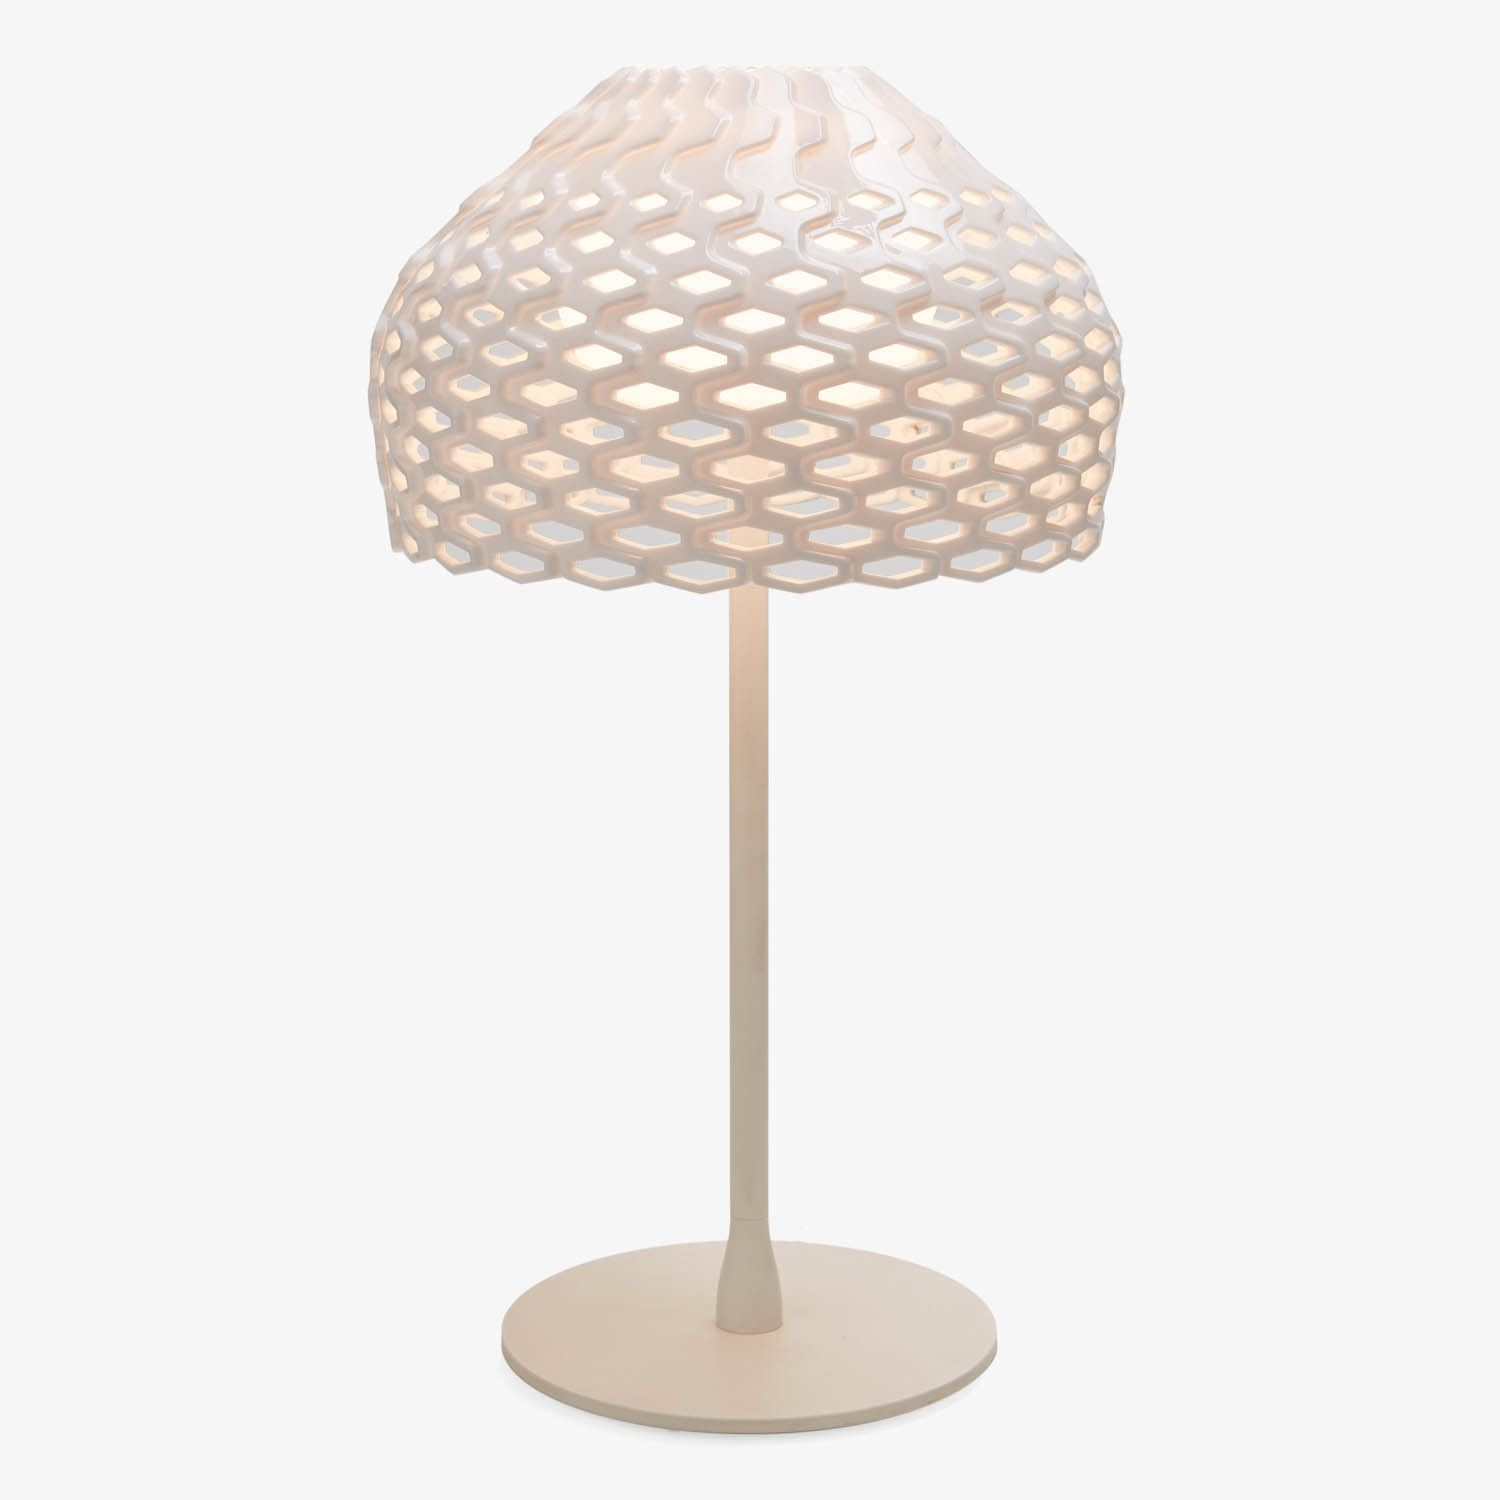 The Tatou table lamp is posed of painted white steel with a high